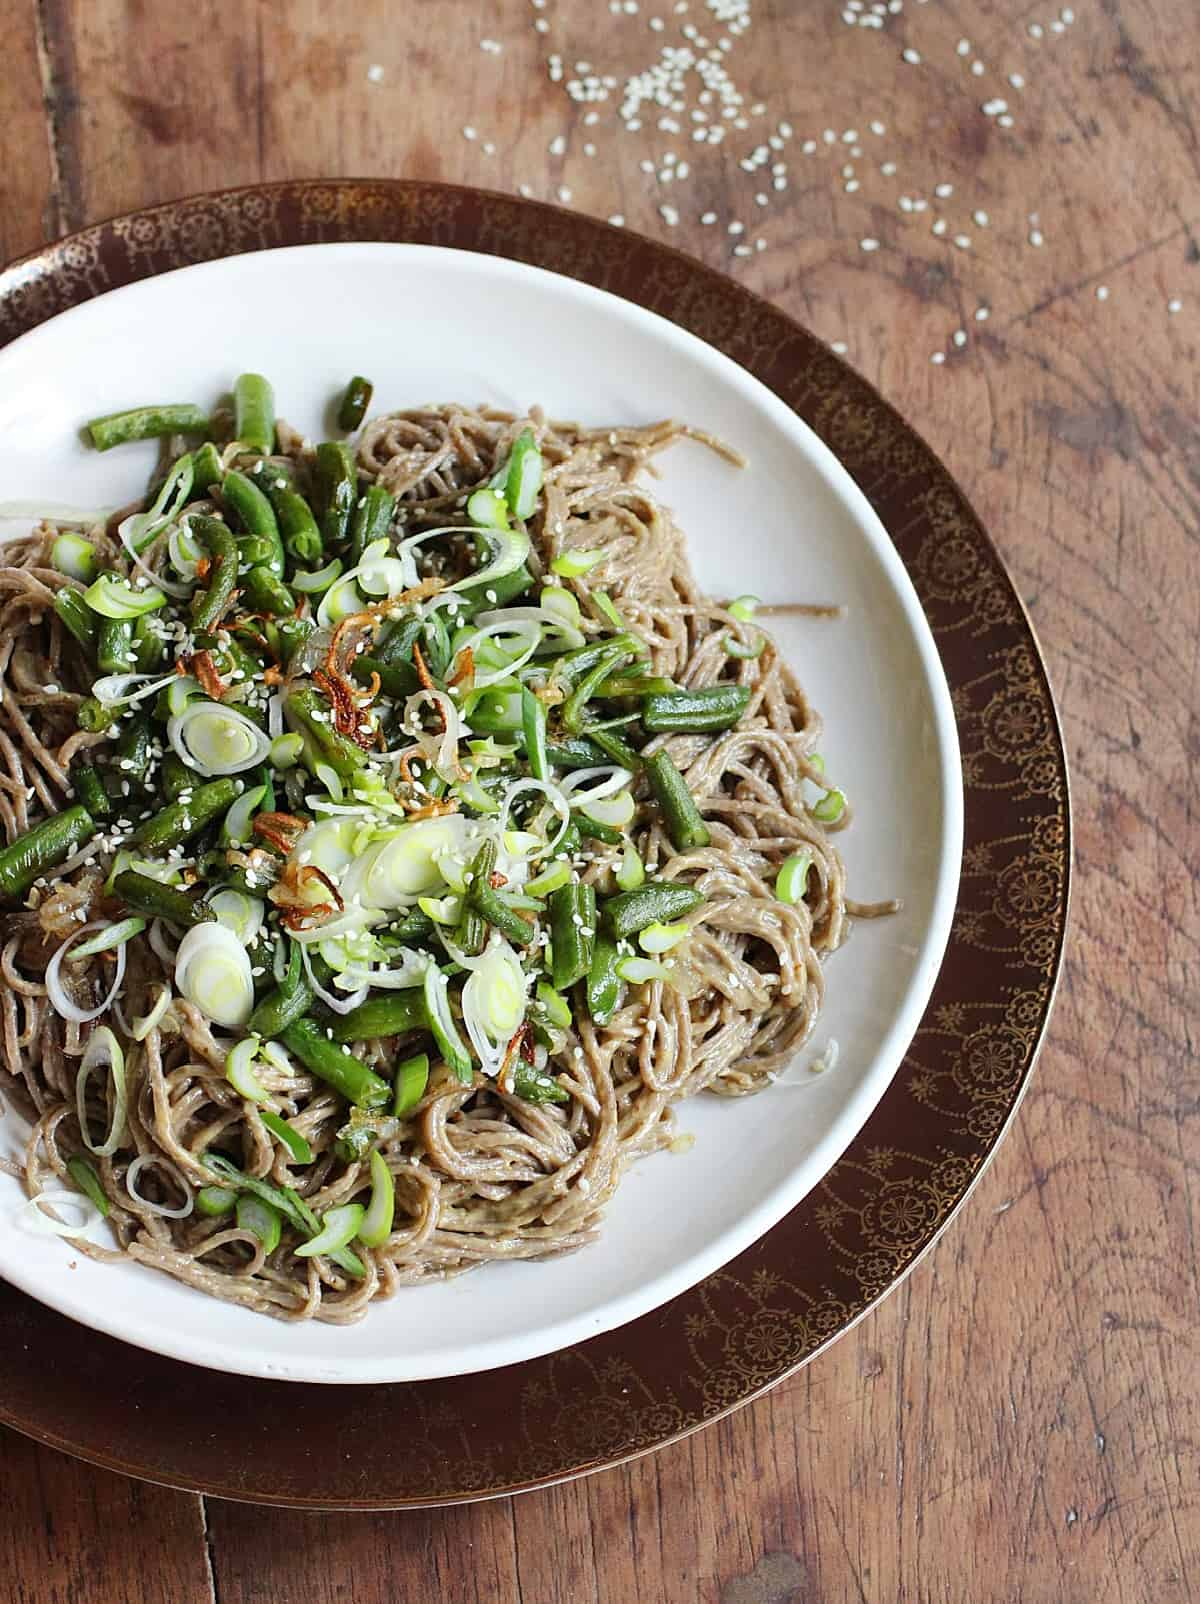 On a wooden table brown and white plates with noodle salad, green beans and shallots